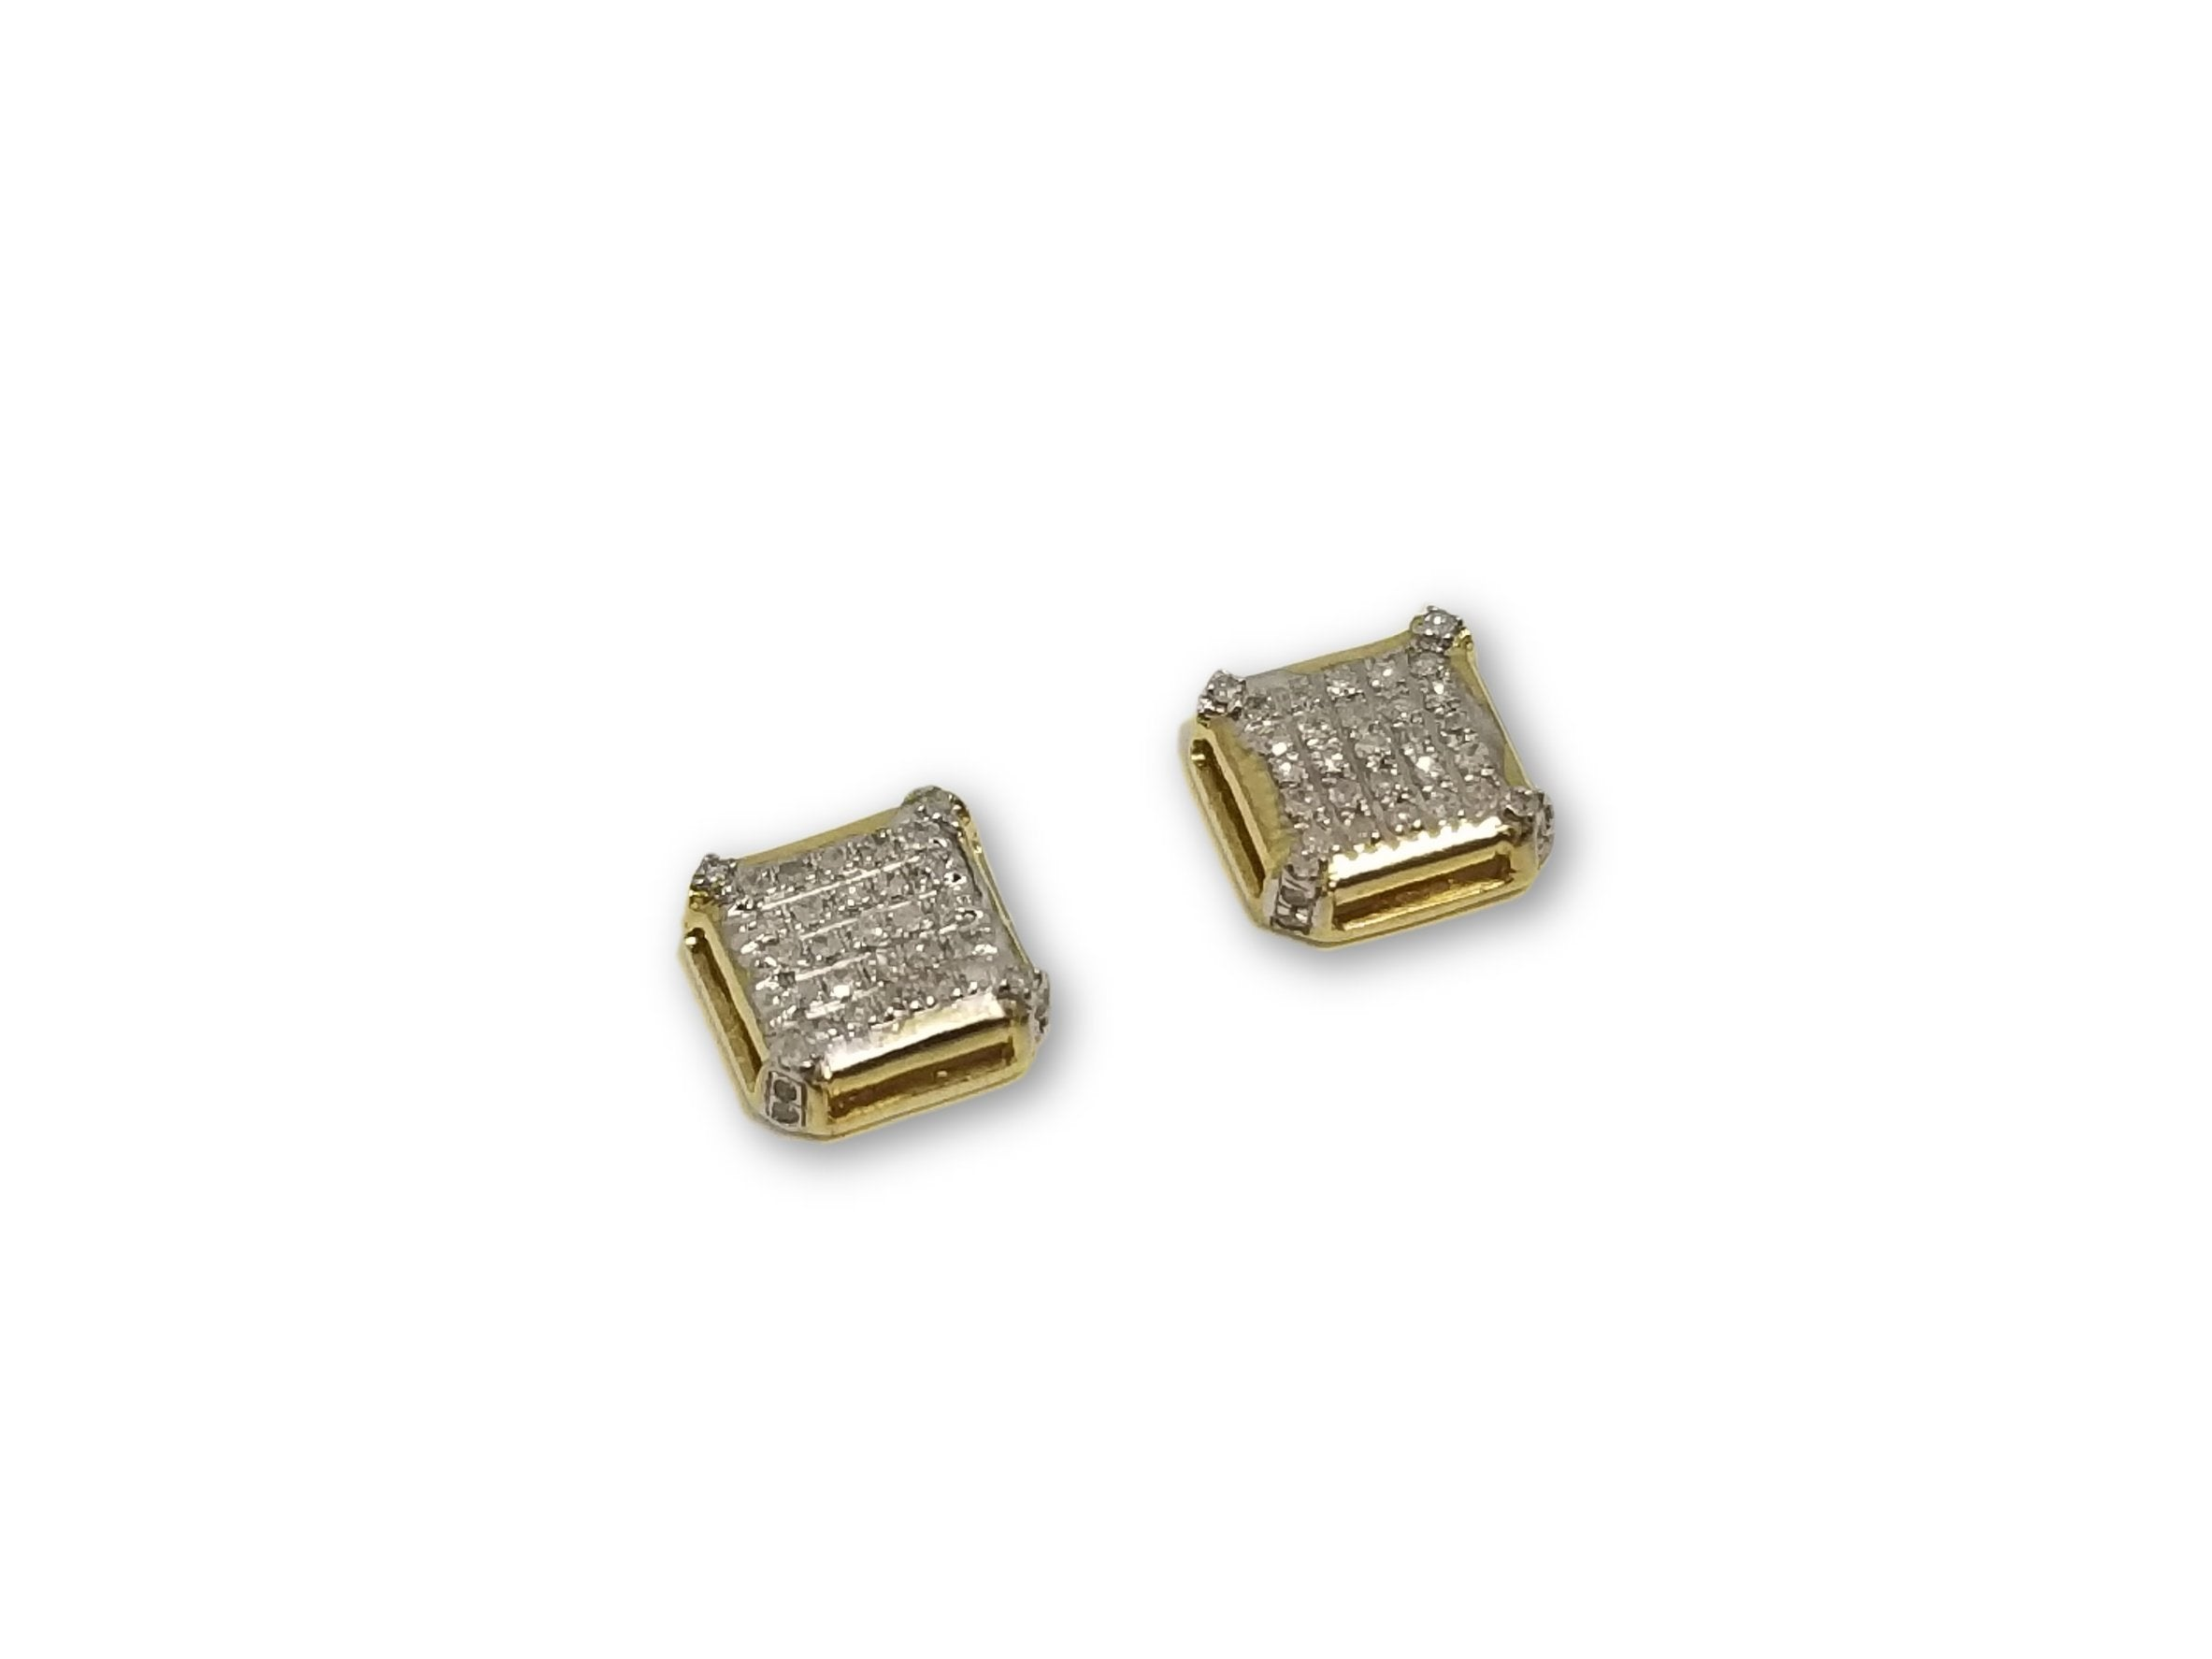 Studs25 0.14ct de diamants en or 10k - orquebec